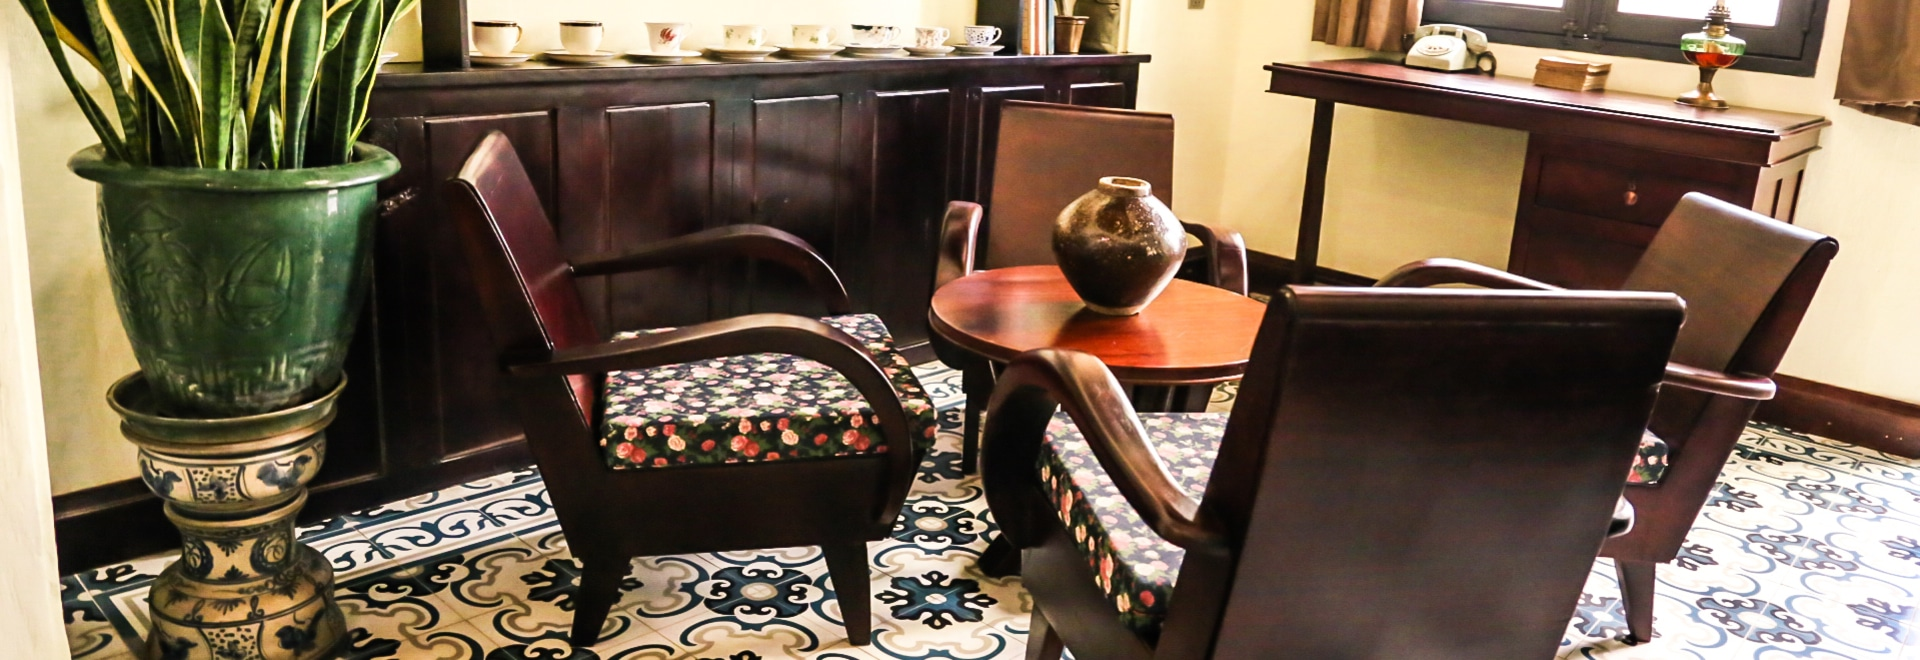 Indochine decor with wooden furniture and handmade cement tile